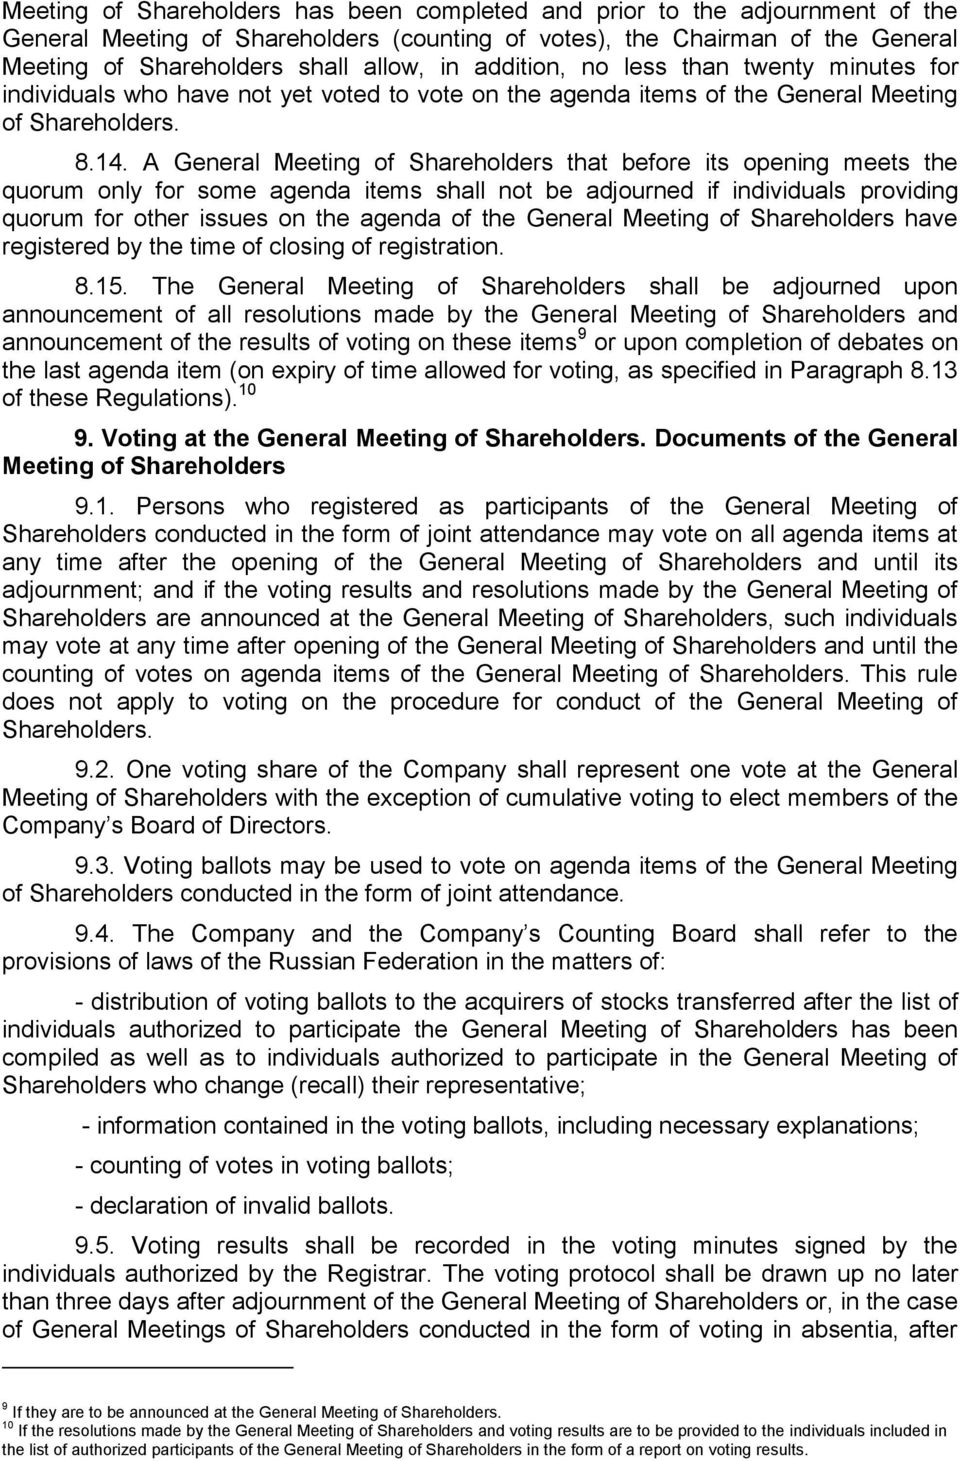 A General Meeting of Shareholders that before its opening meets the quorum only for some agenda items shall not be adjourned if individuals providing quorum for other issues on the agenda of the